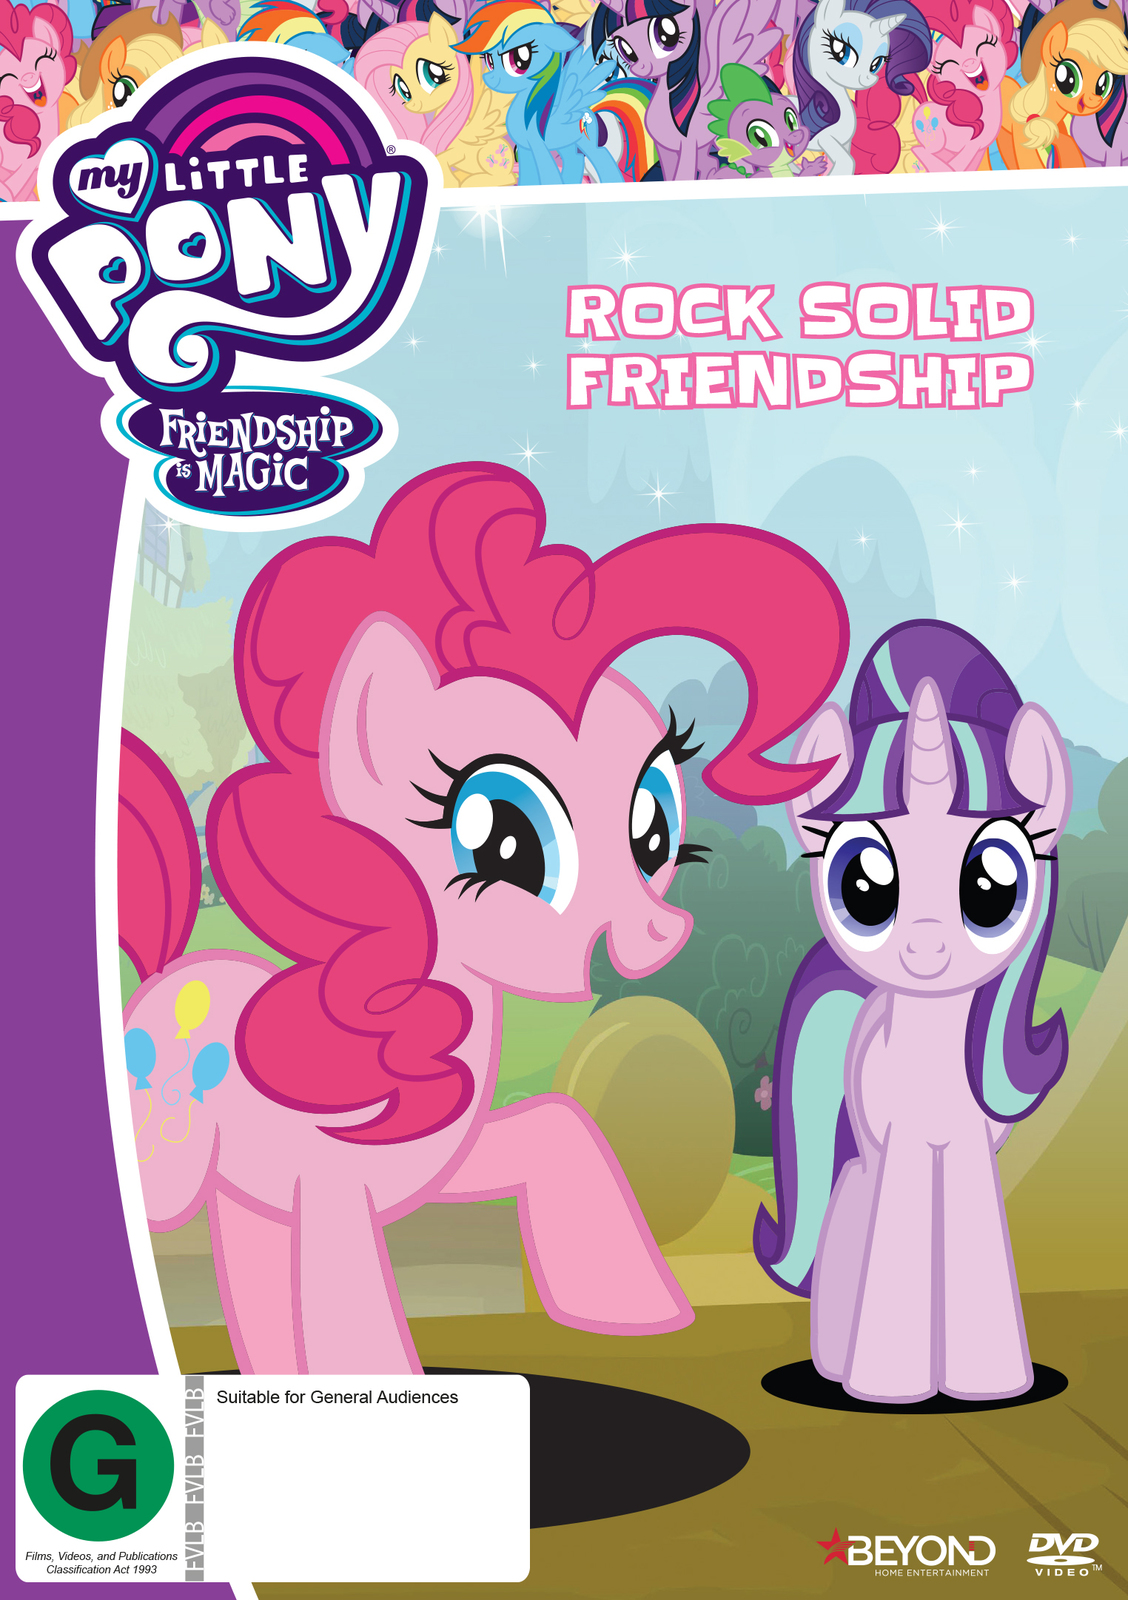 My Little Pony: Friendship Is Magic - Rock Solid Friendship on DVD image